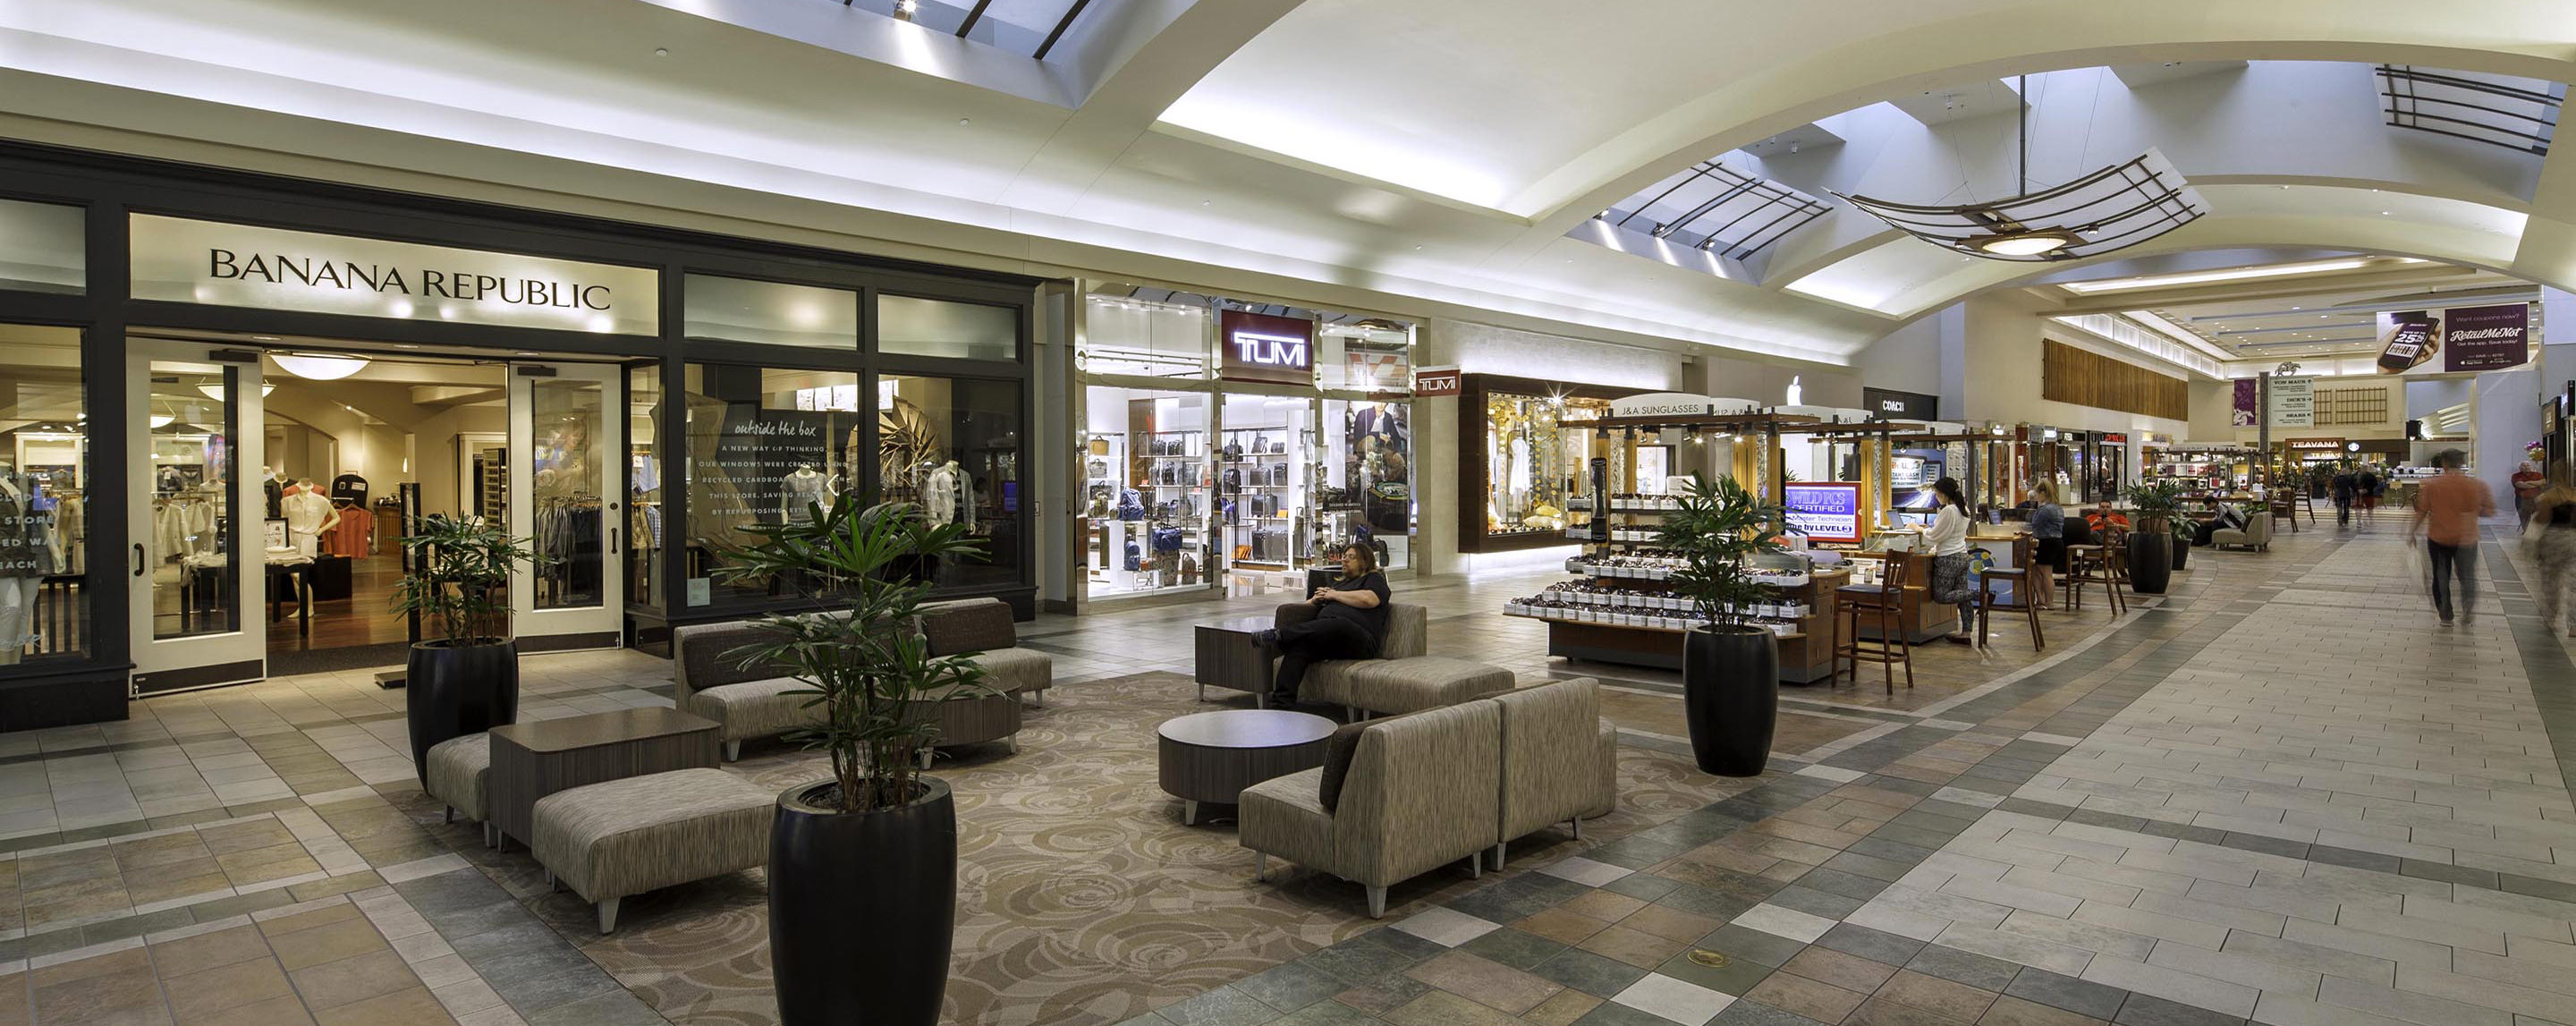 Inside Oxmoor Center, the main walkway is filled with kiosks, seating areas, and storefronts